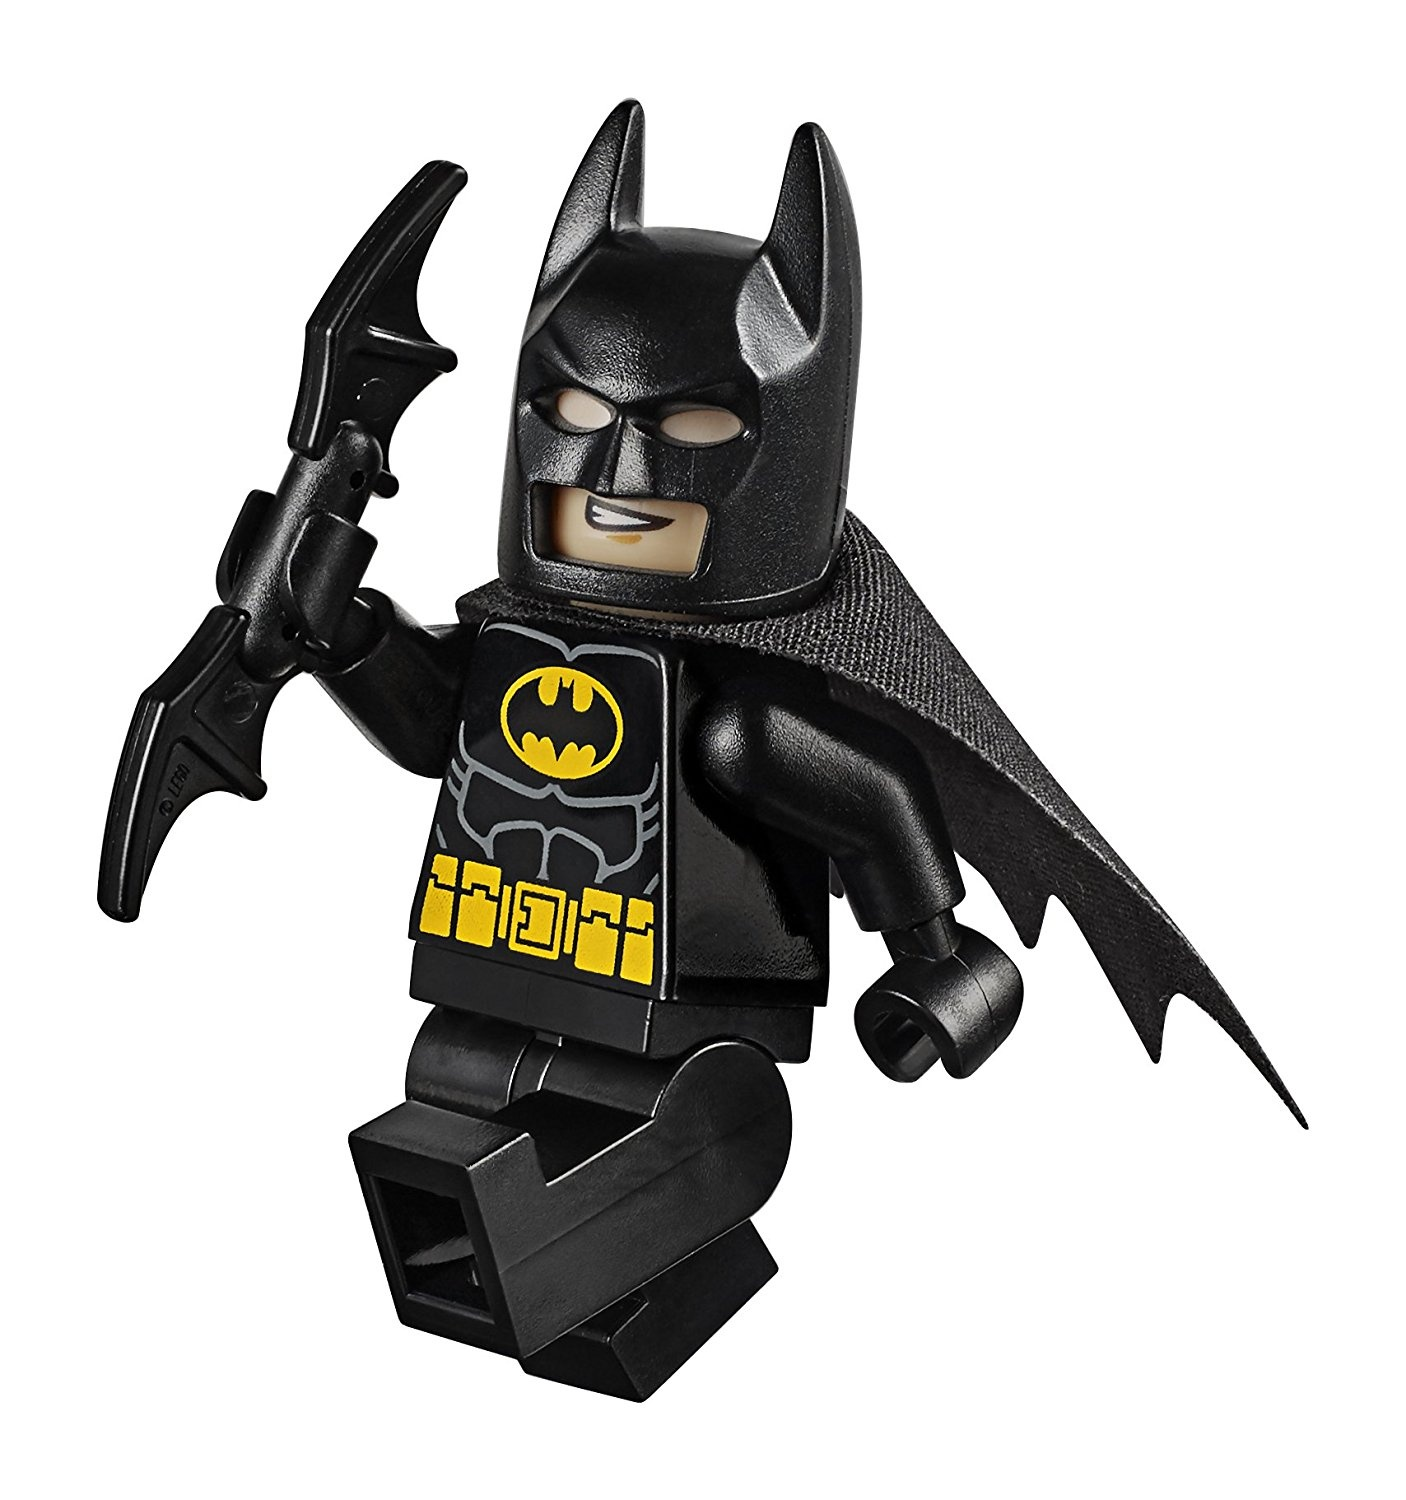 Freeze 10737 Superhero Toy for 4-7 Years-Old LEGO Juniors Batman vs Mr